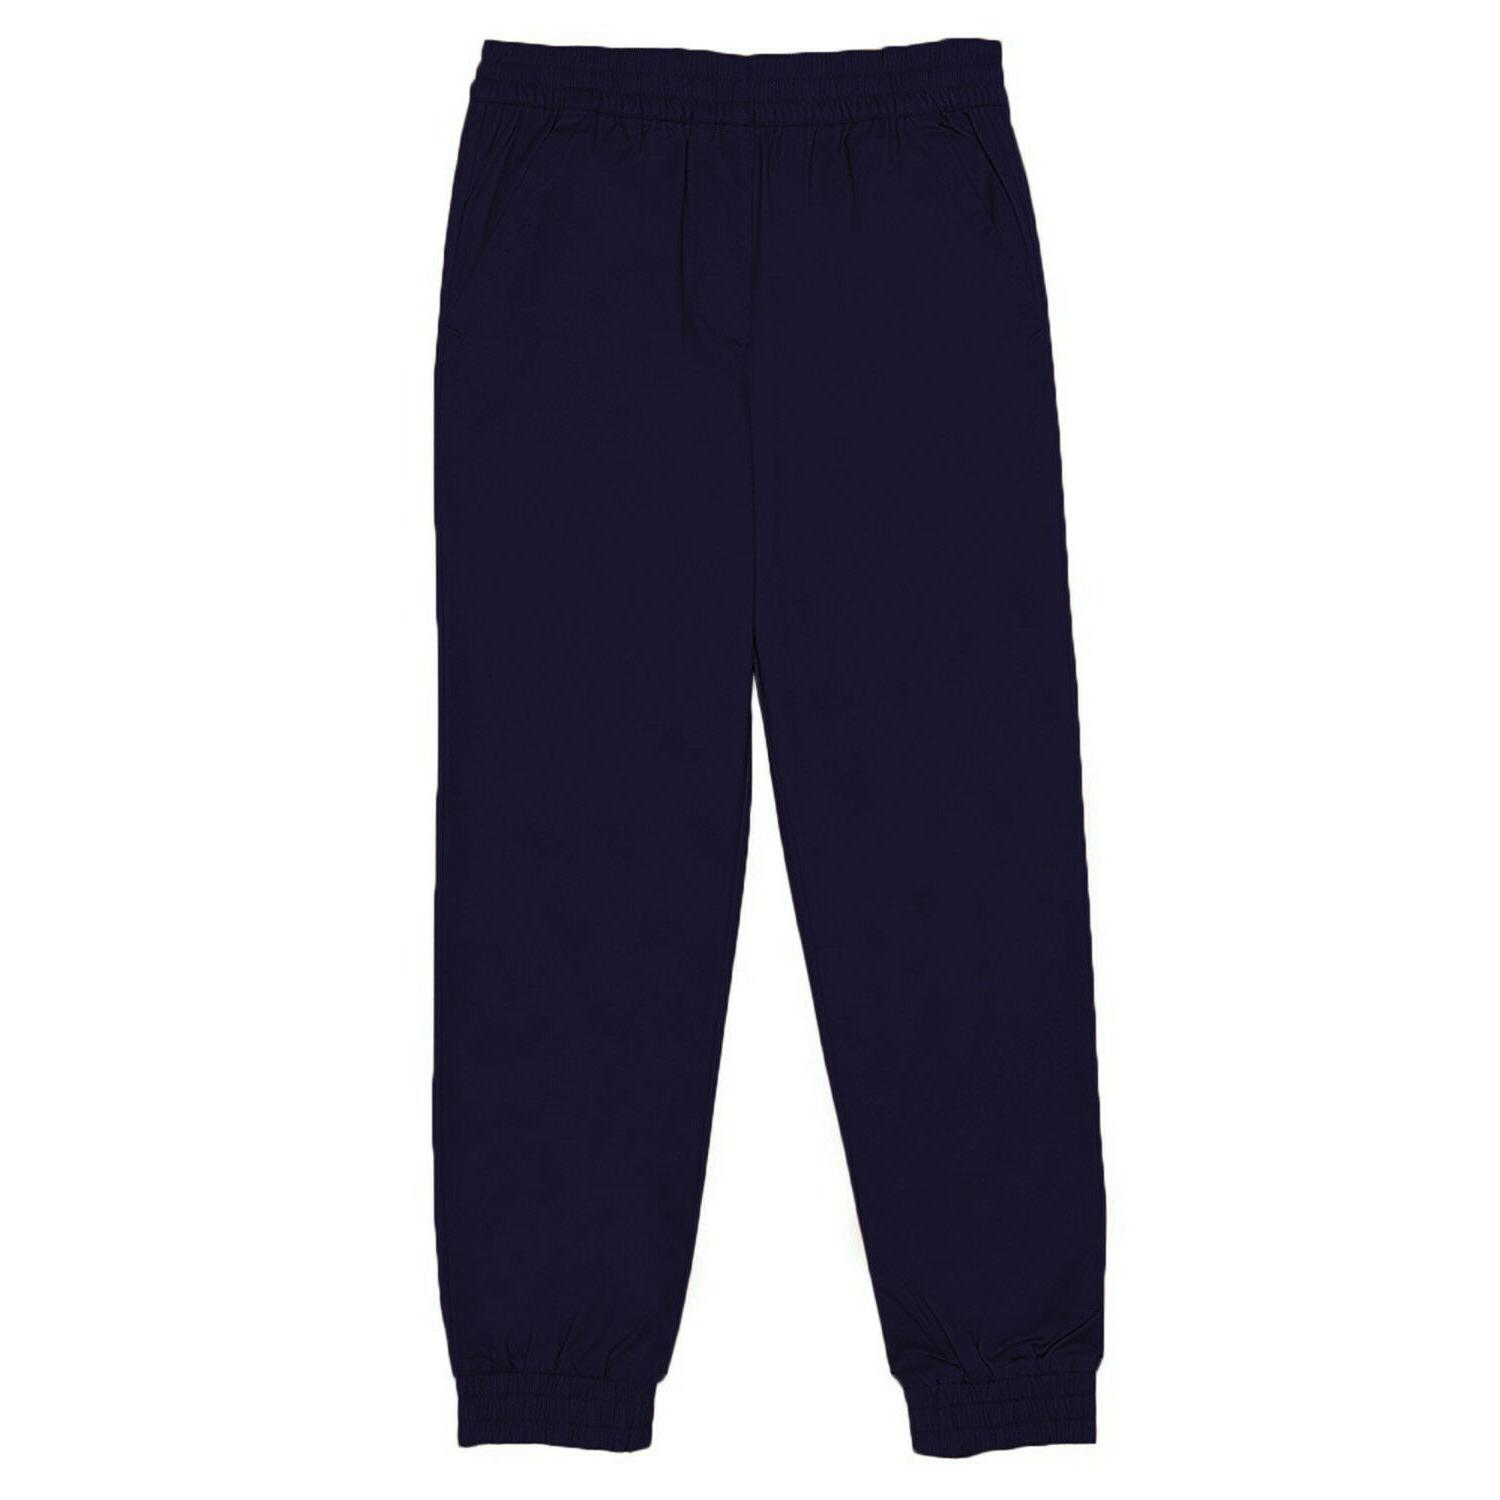 boys navy pull on jogger pants school